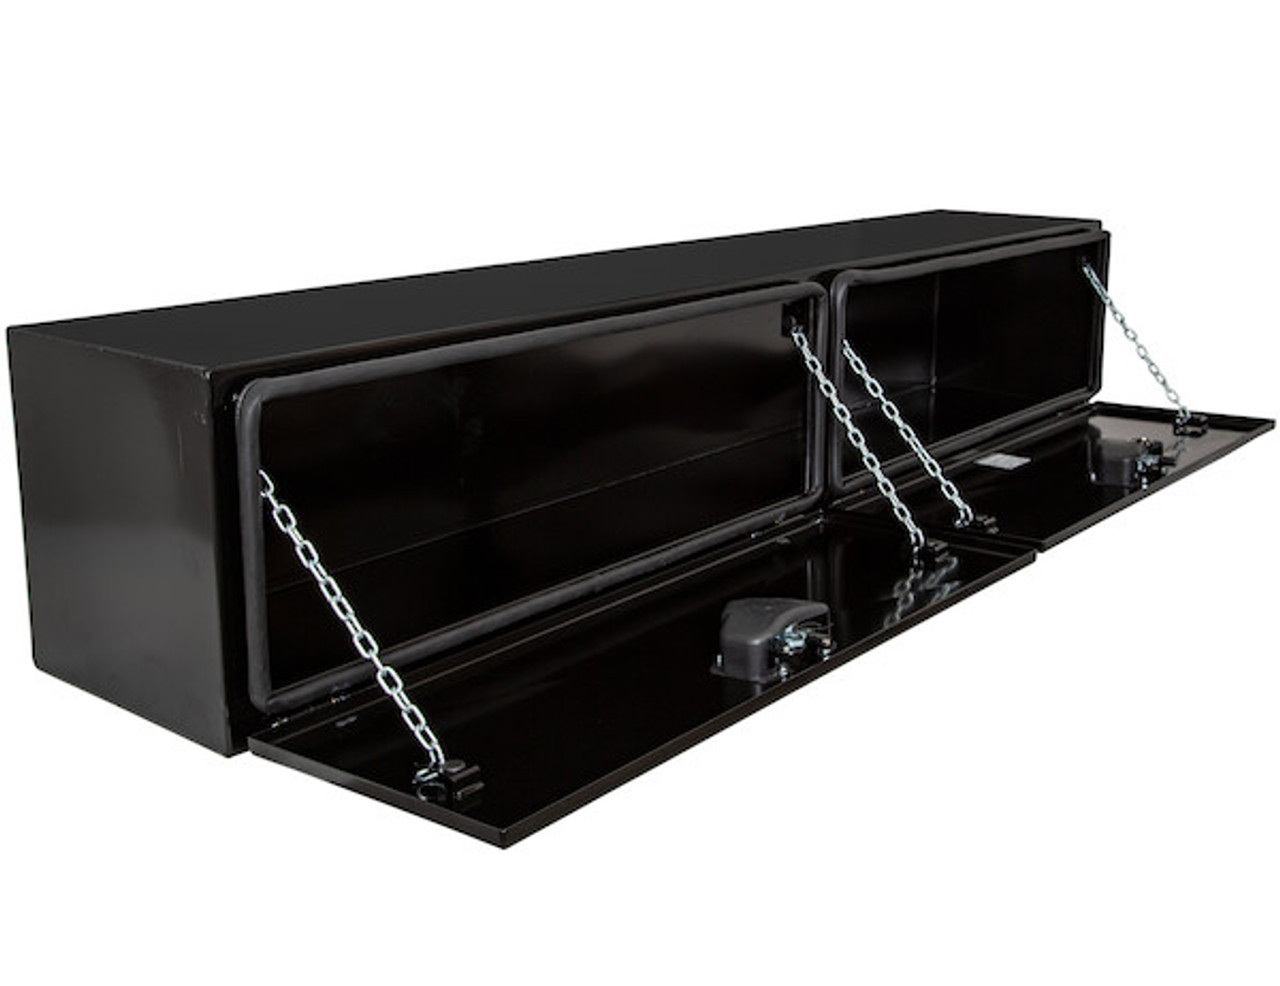 "1742325 BUYERS PRODUCTS XD BLACK STEEL UNDERBODY HEAVY DUTY TRUCK TOOLBOX 18""Hx18""Dx72""W"